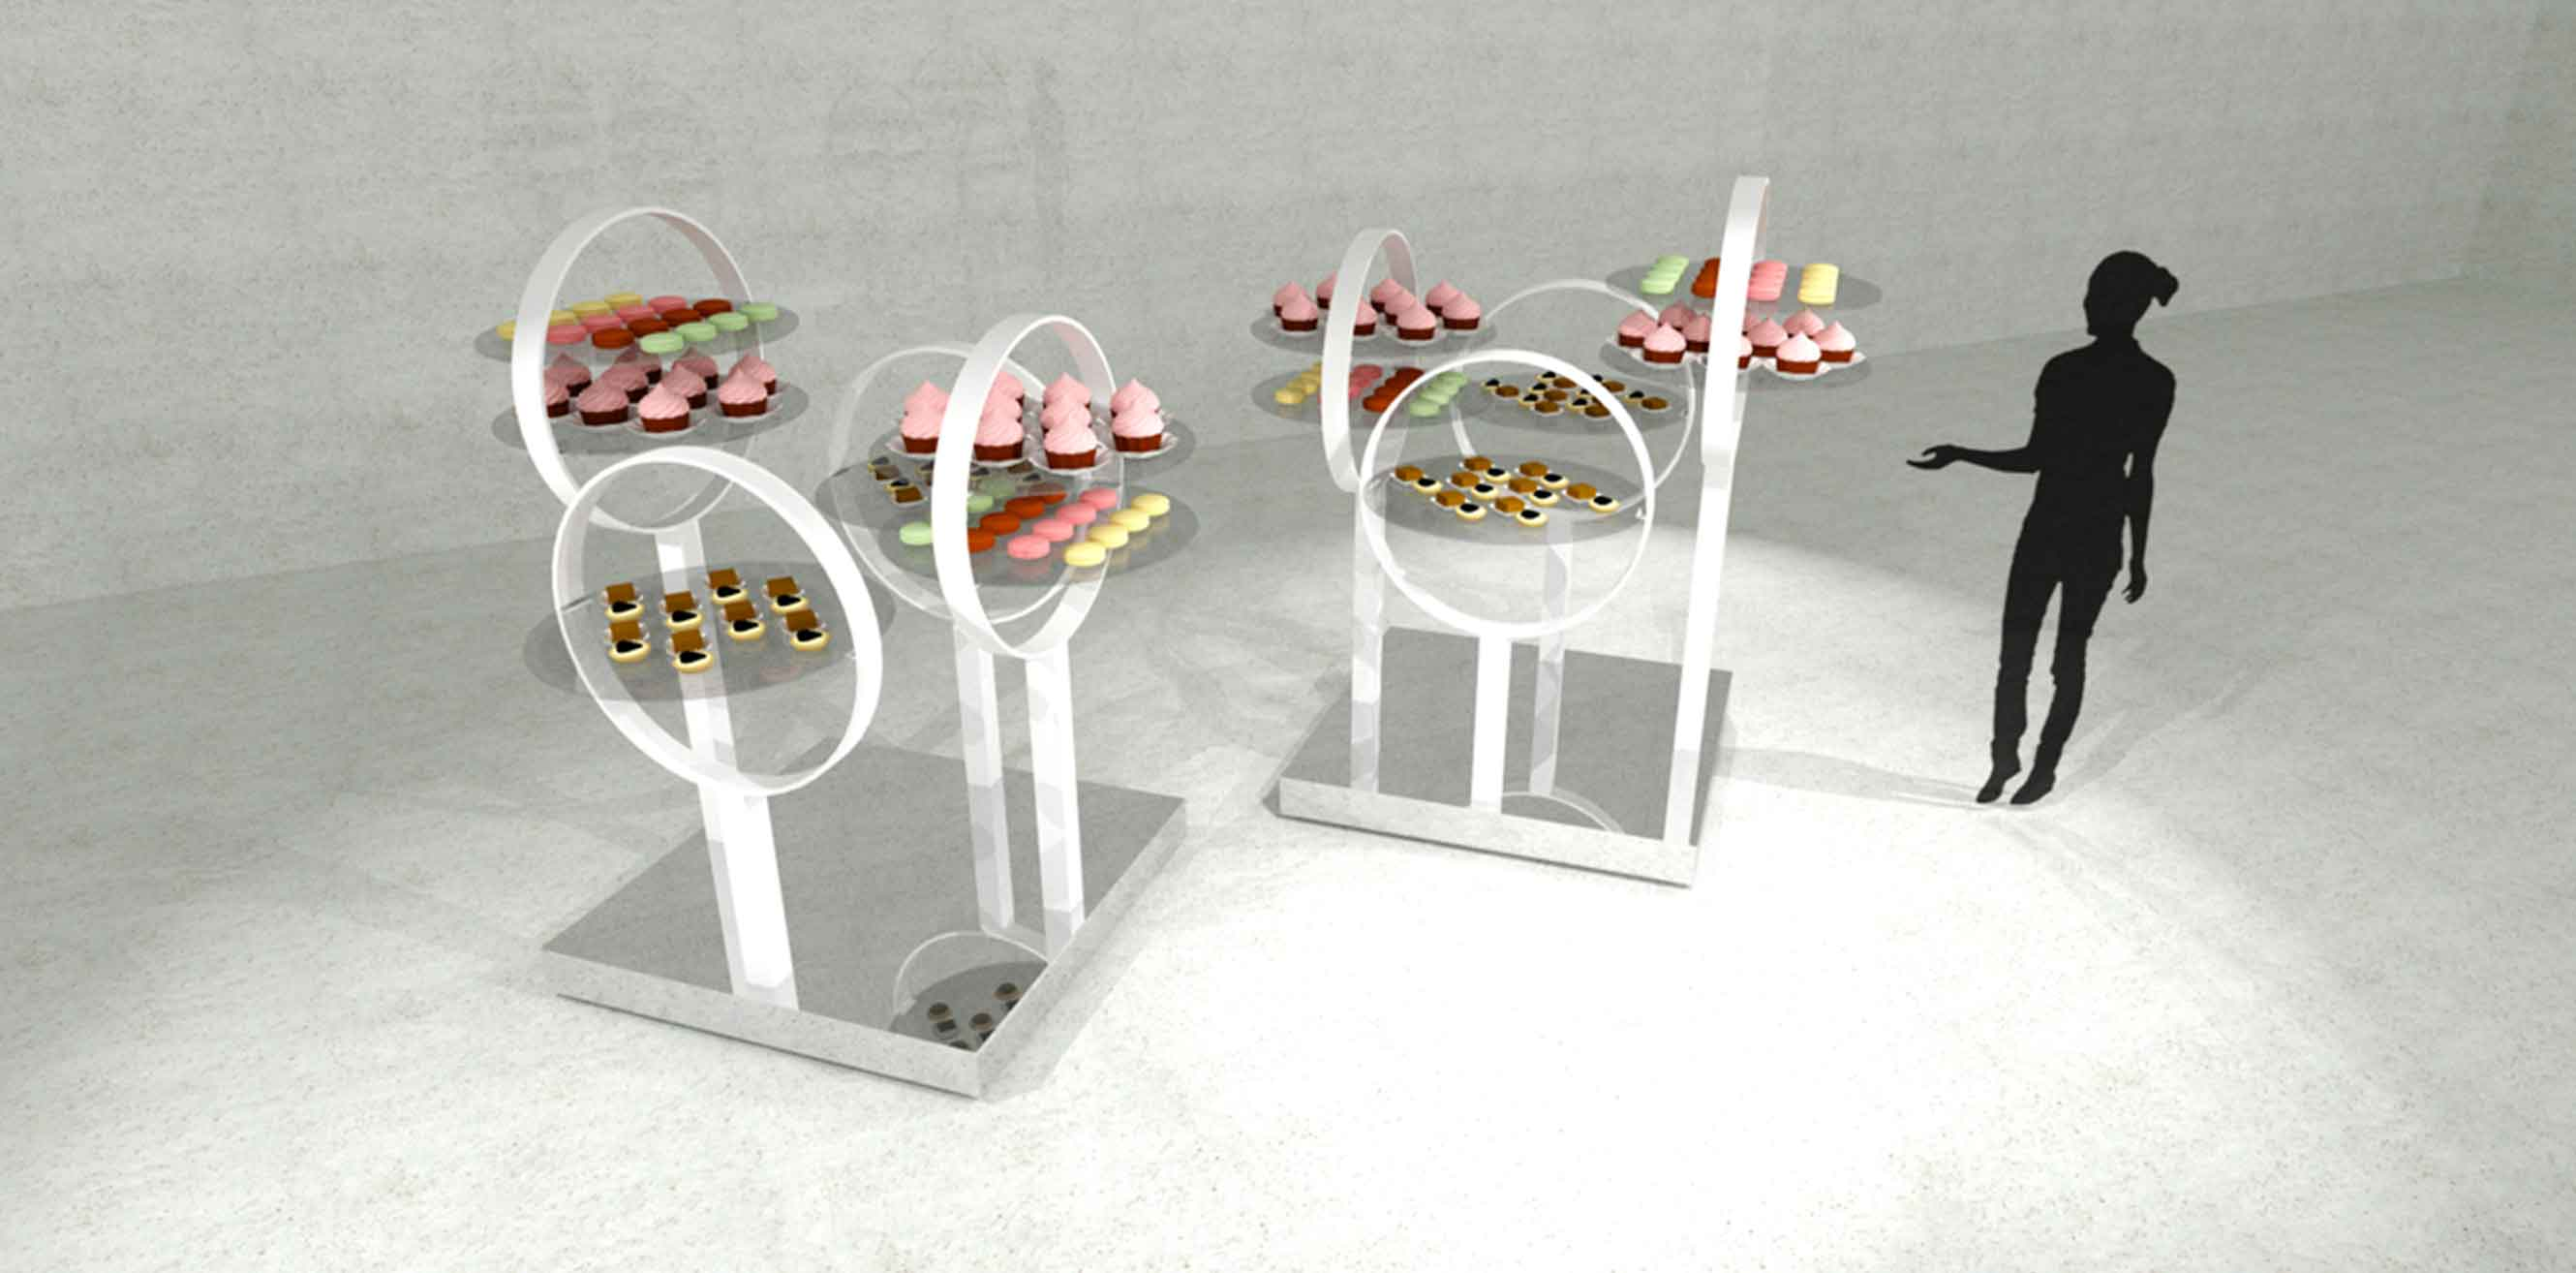 3D rendering of food tables